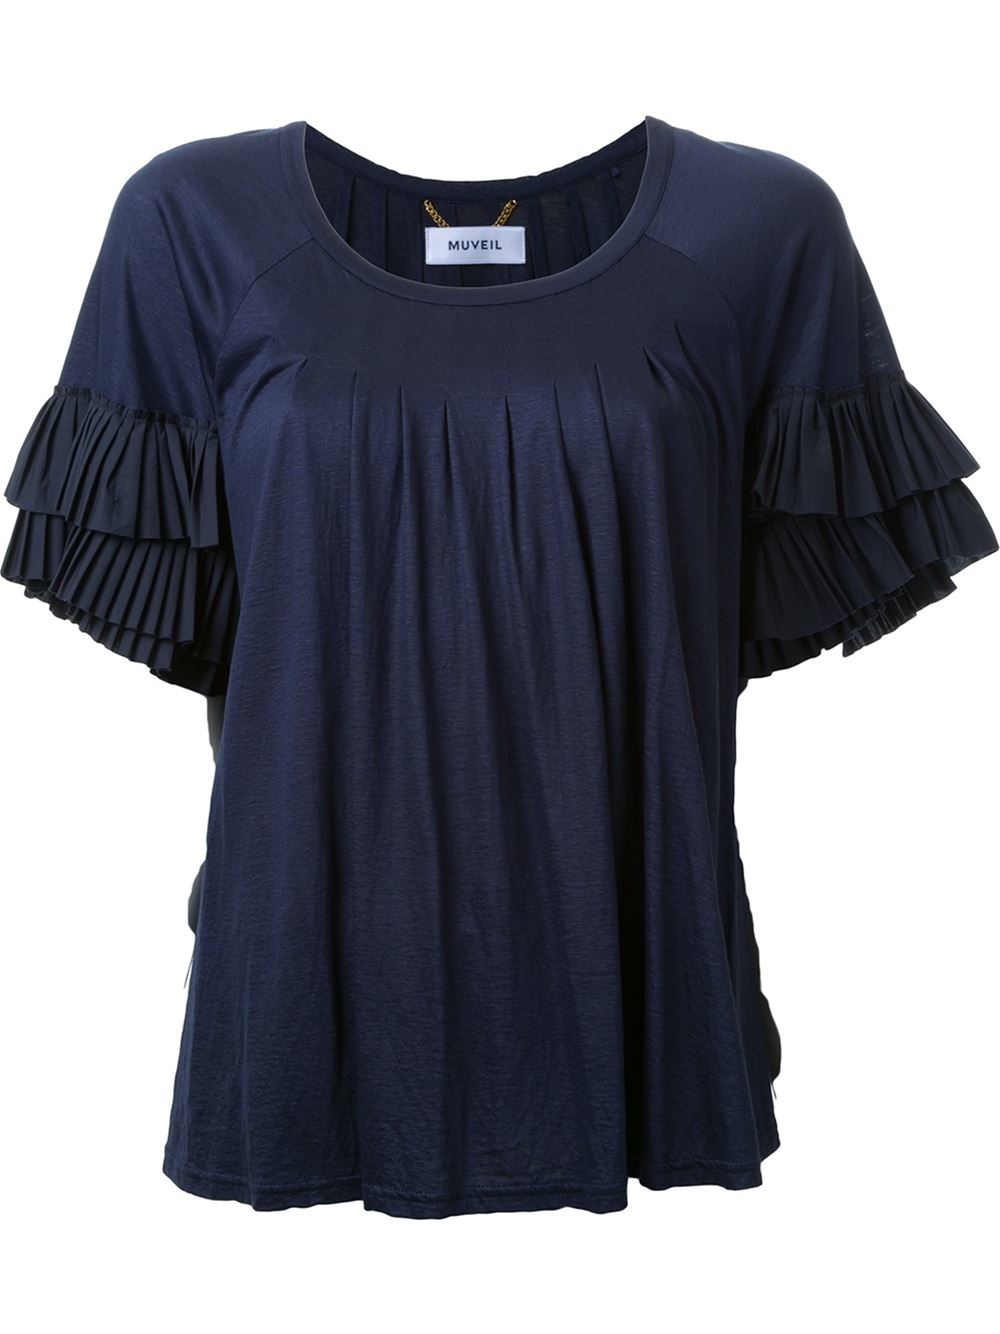 Muveil ruffle sleeve pleated t shirt in blue lyst for Frill sleeve t shirt